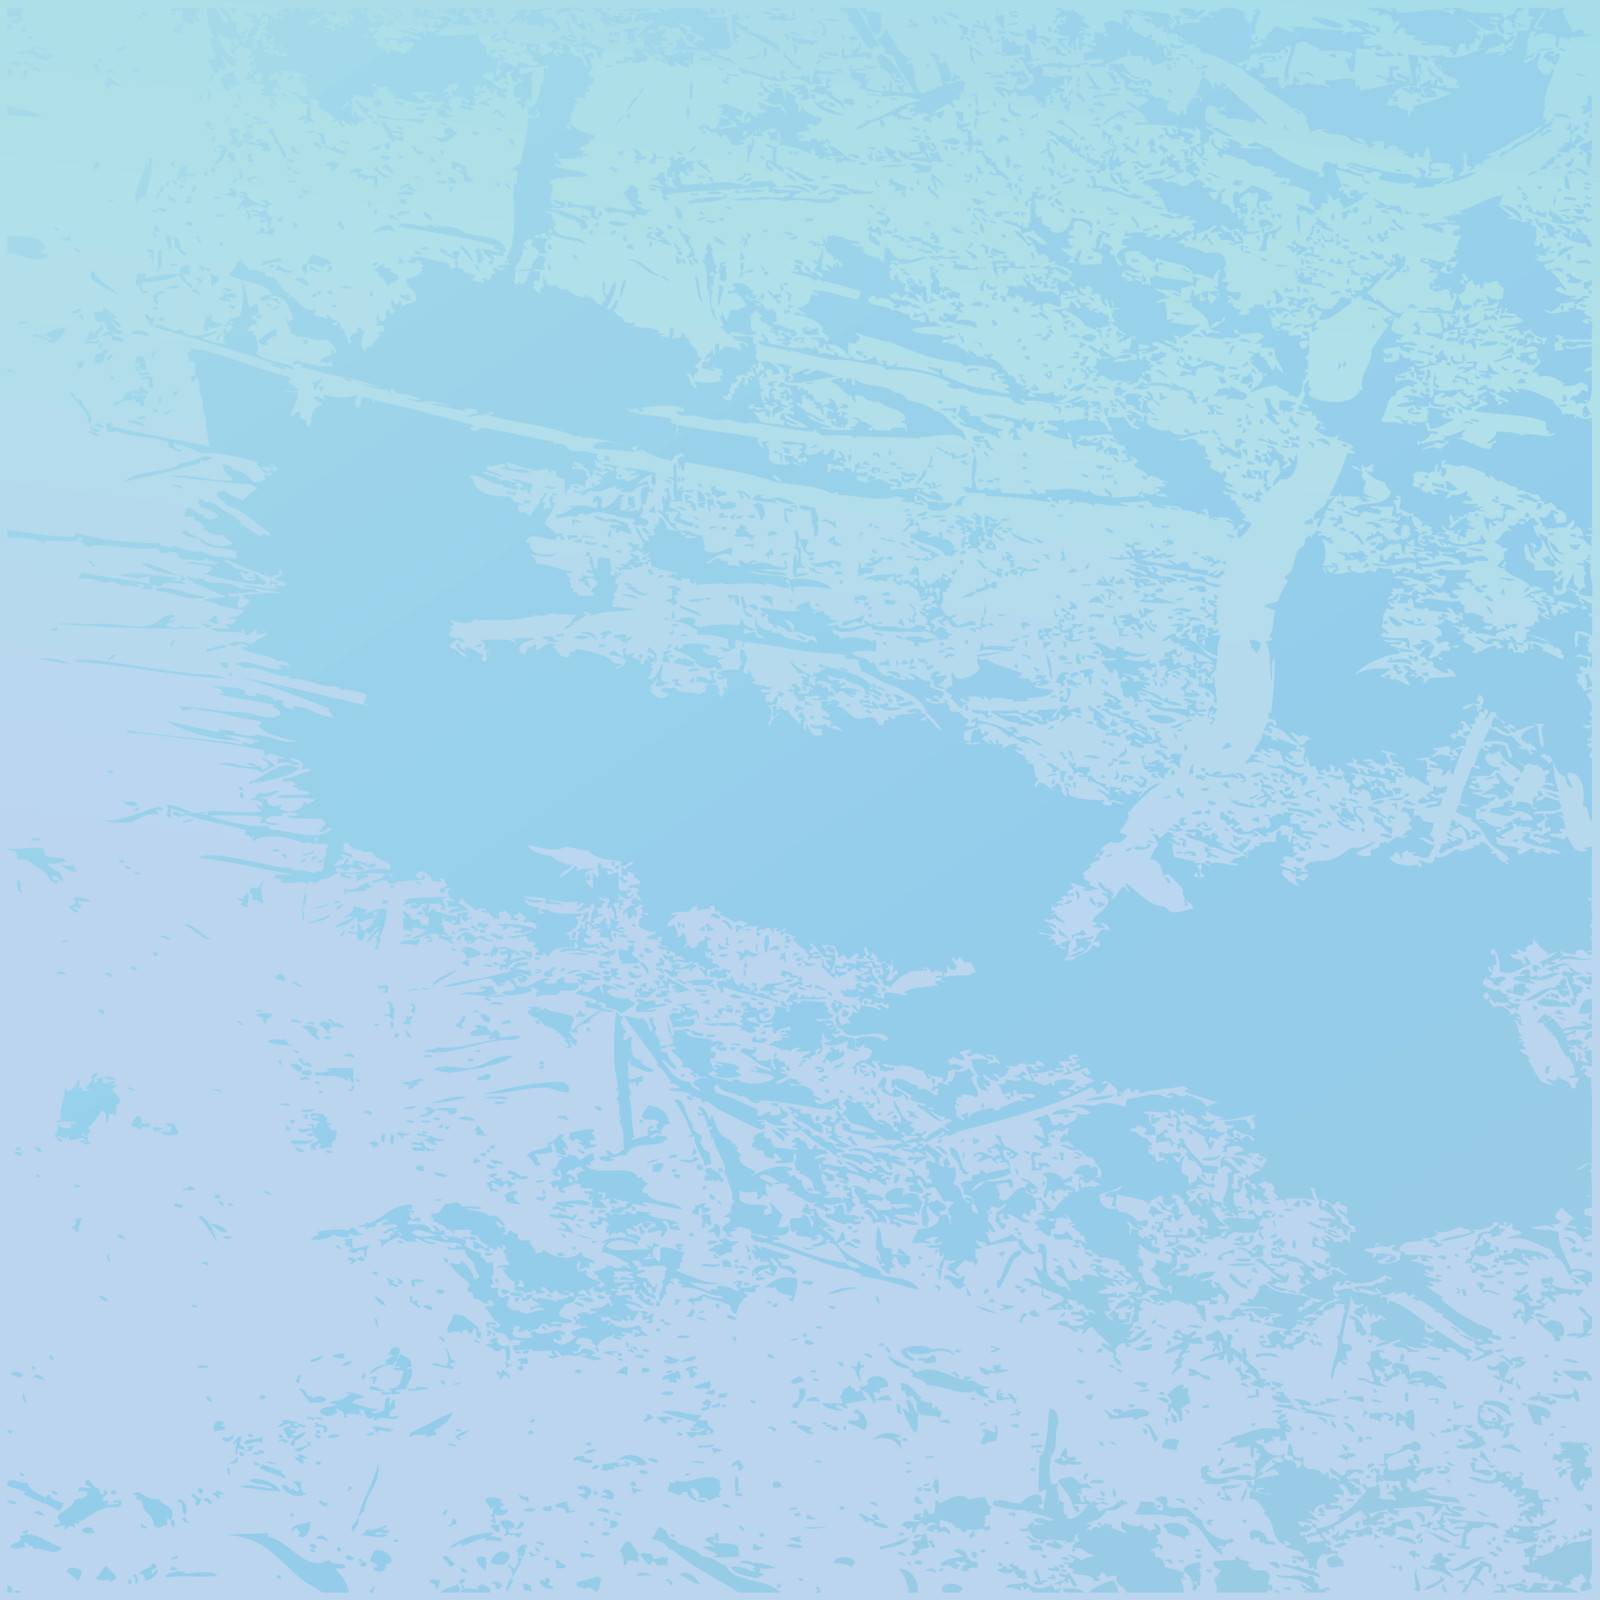 Backround image of a frozen glass, vector art